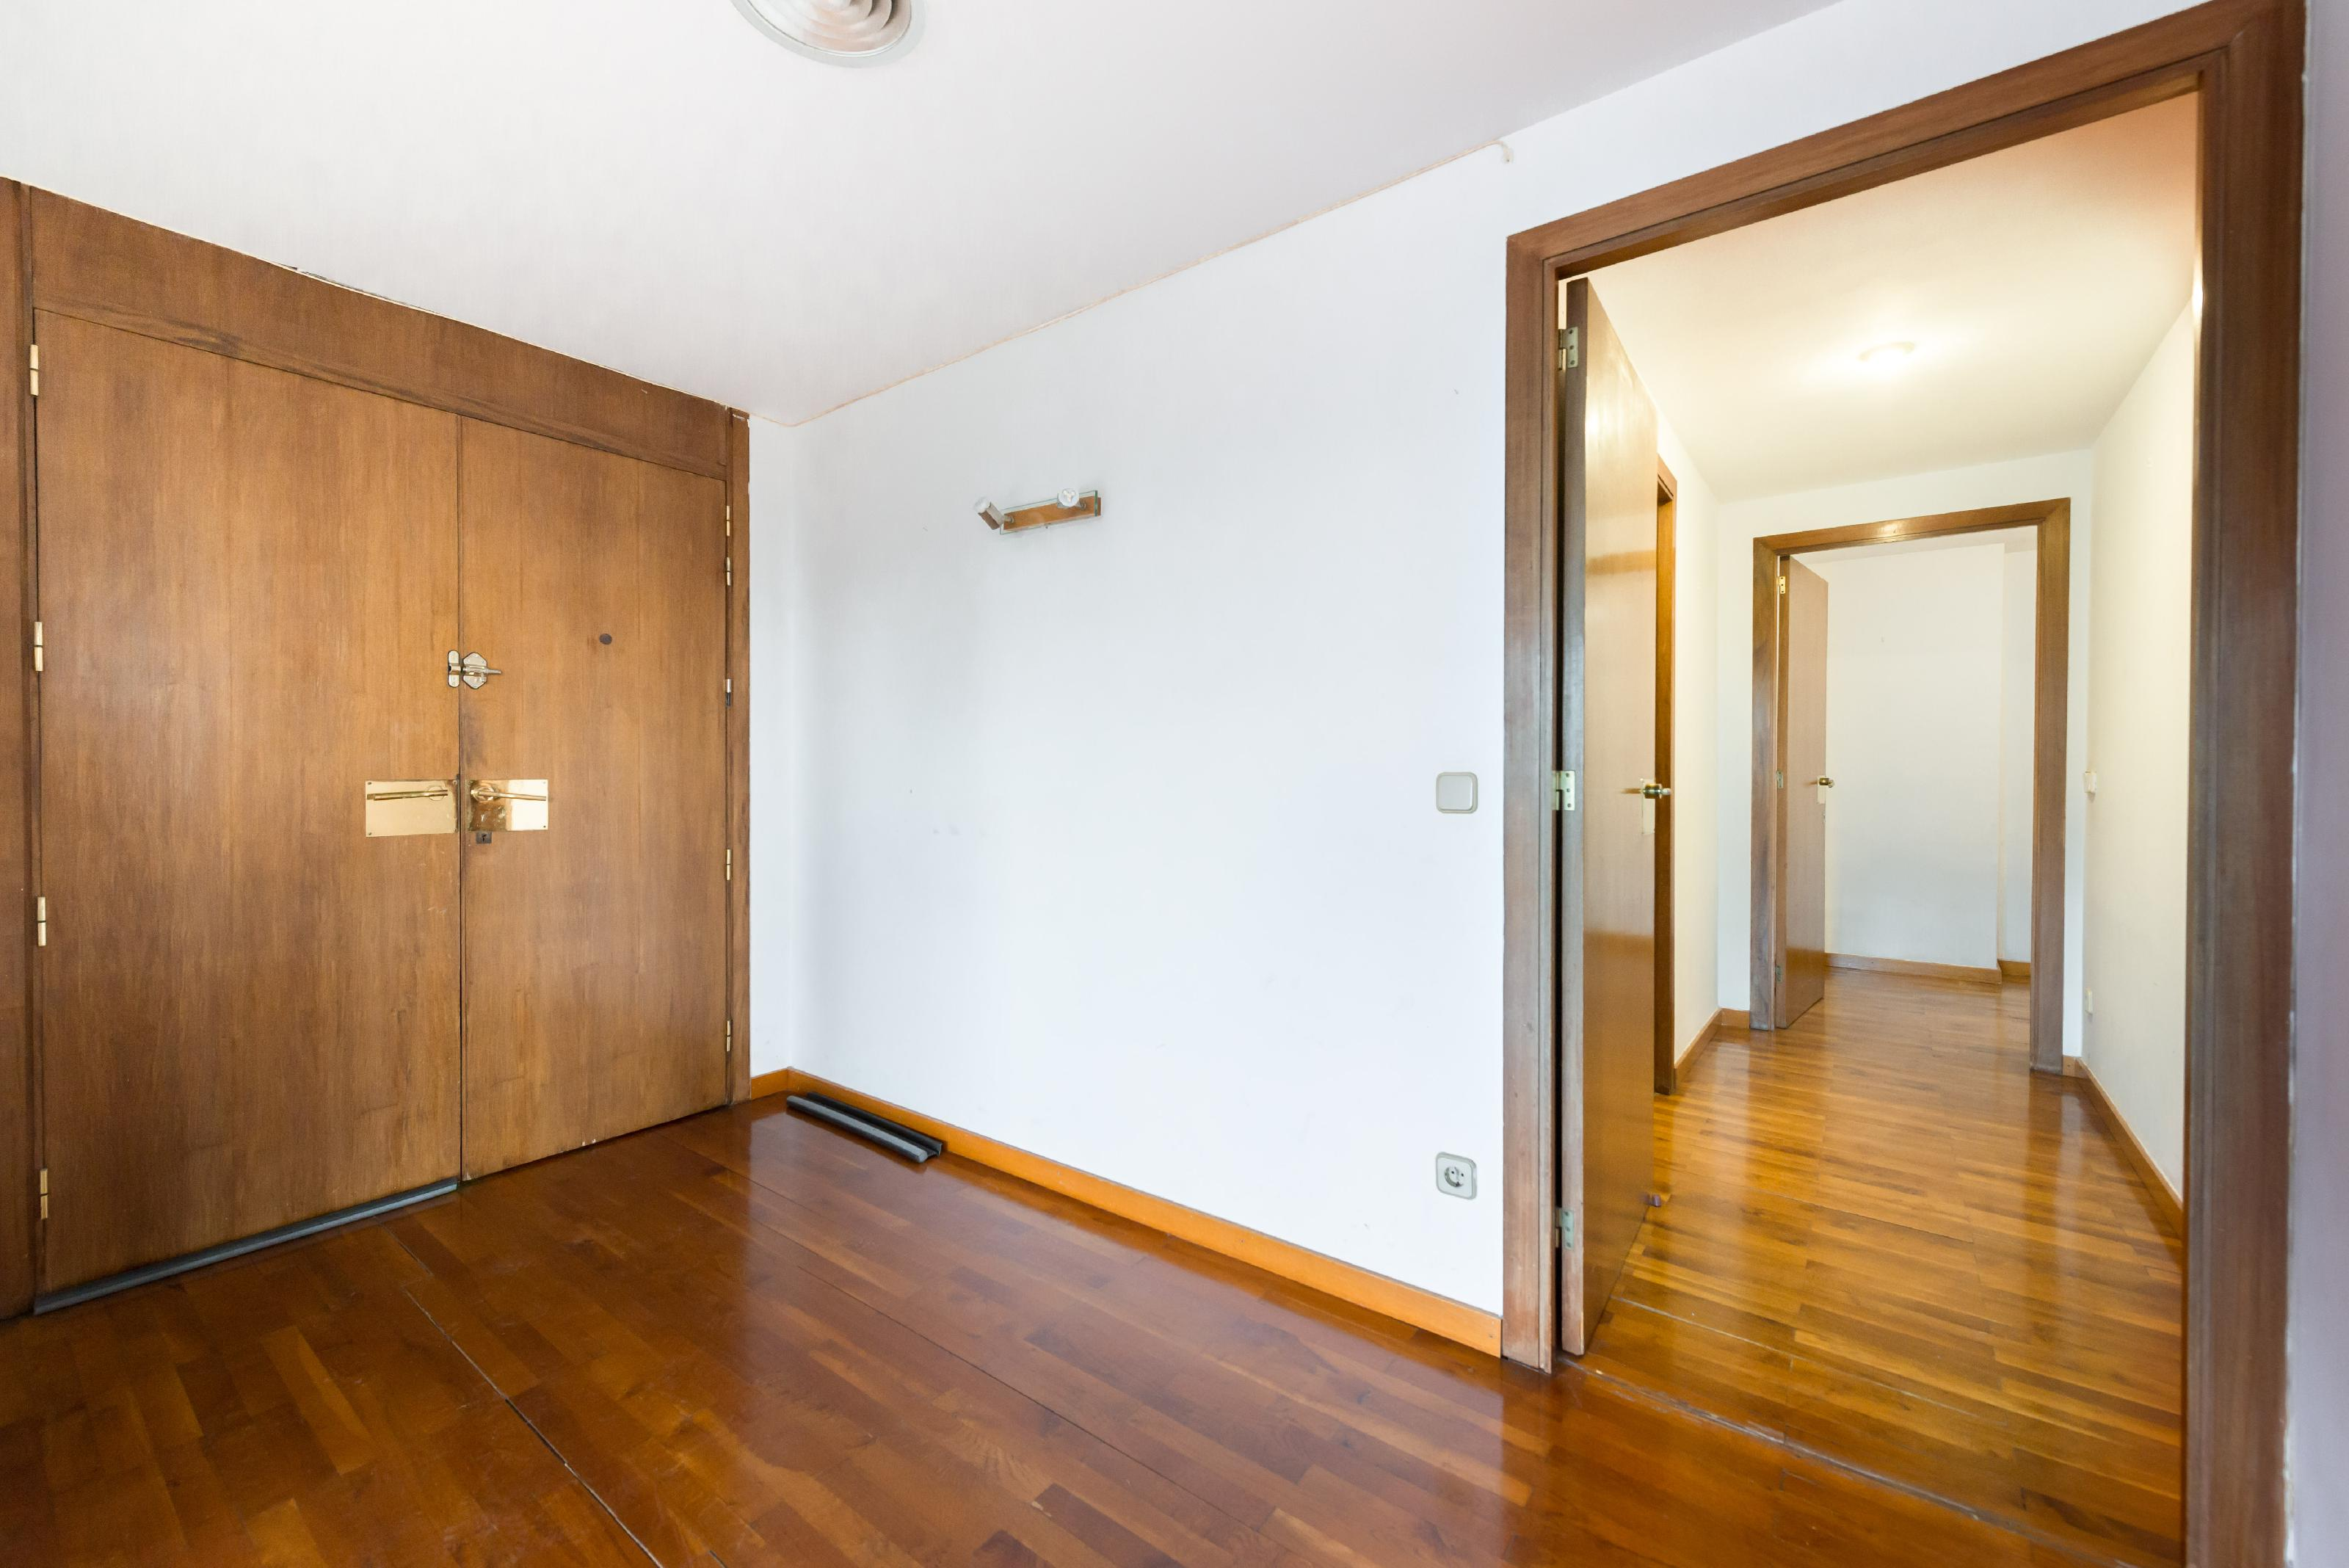 245495 Penthouse for sale in Les Corts, Pedralbes 33